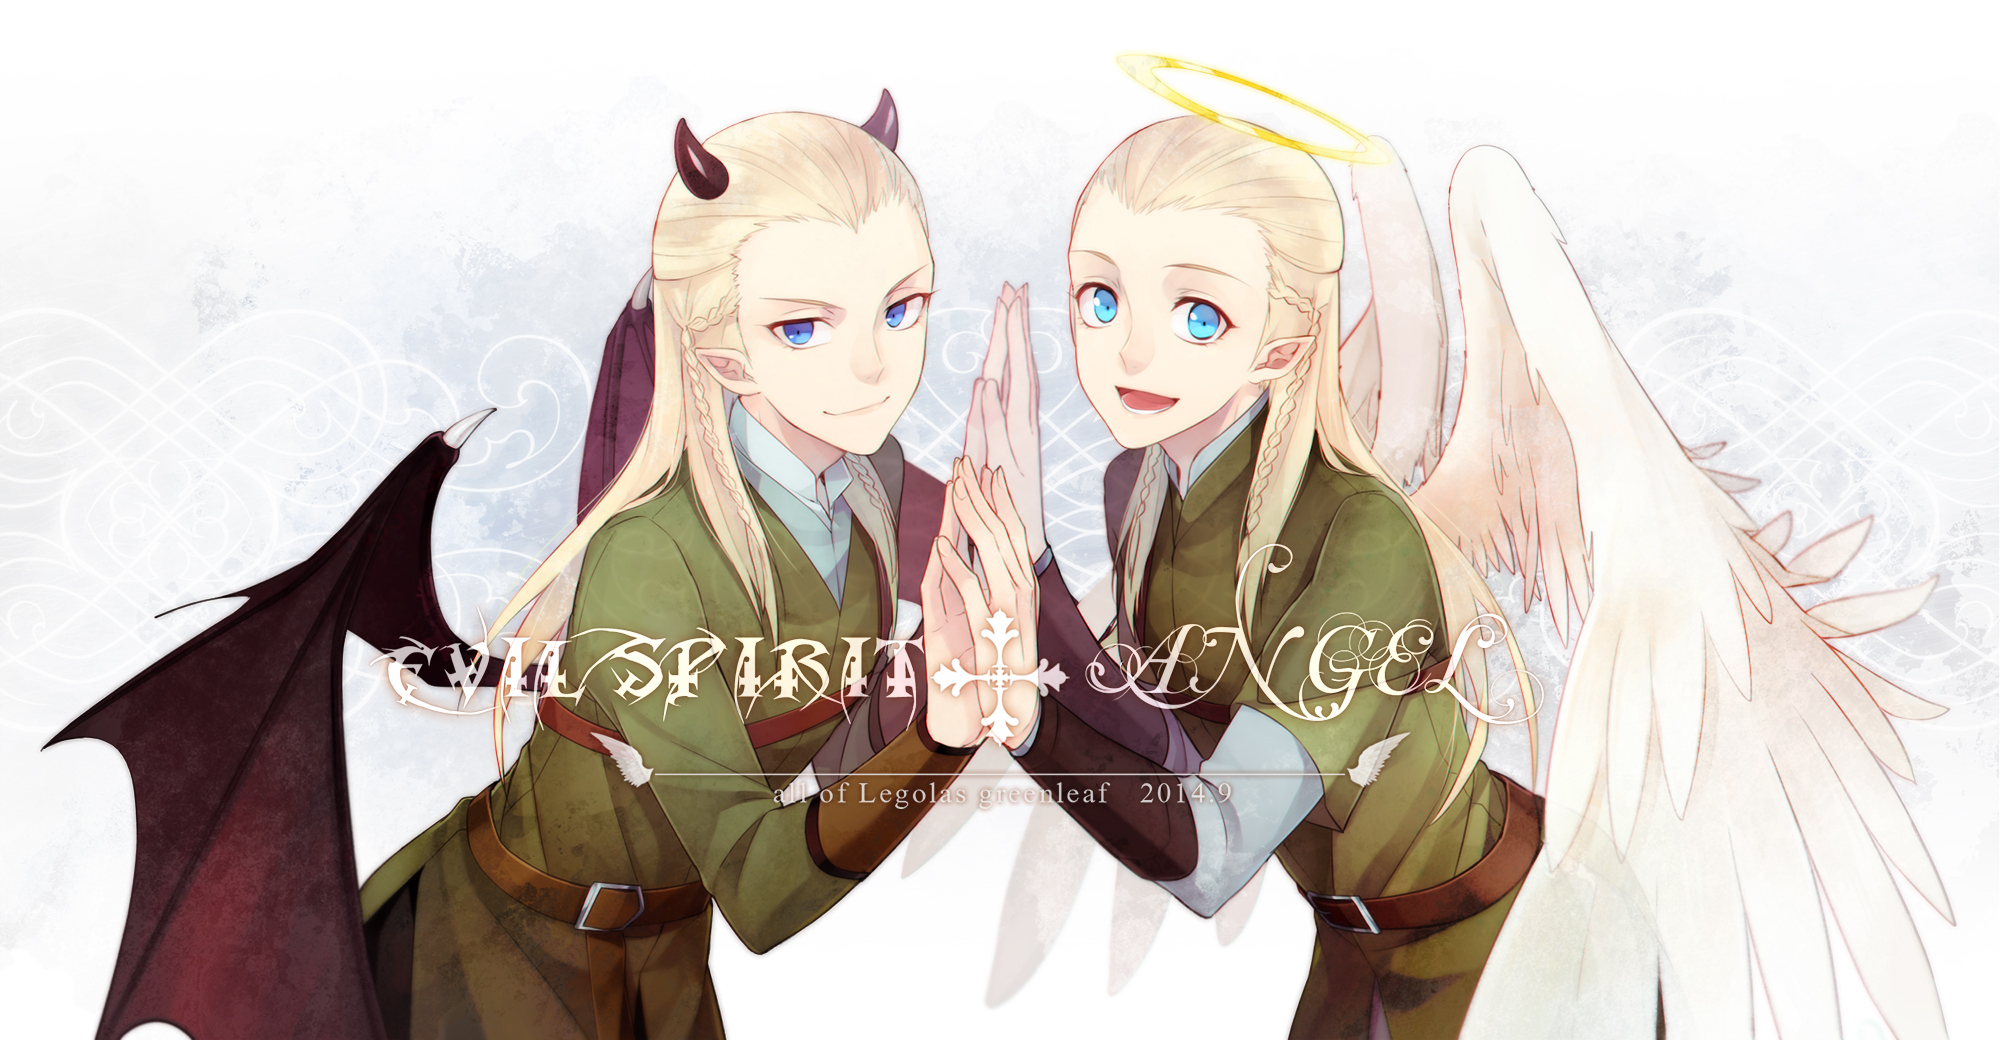 Legolas - The Lord of the Rings - Zerochan Anime Image Board